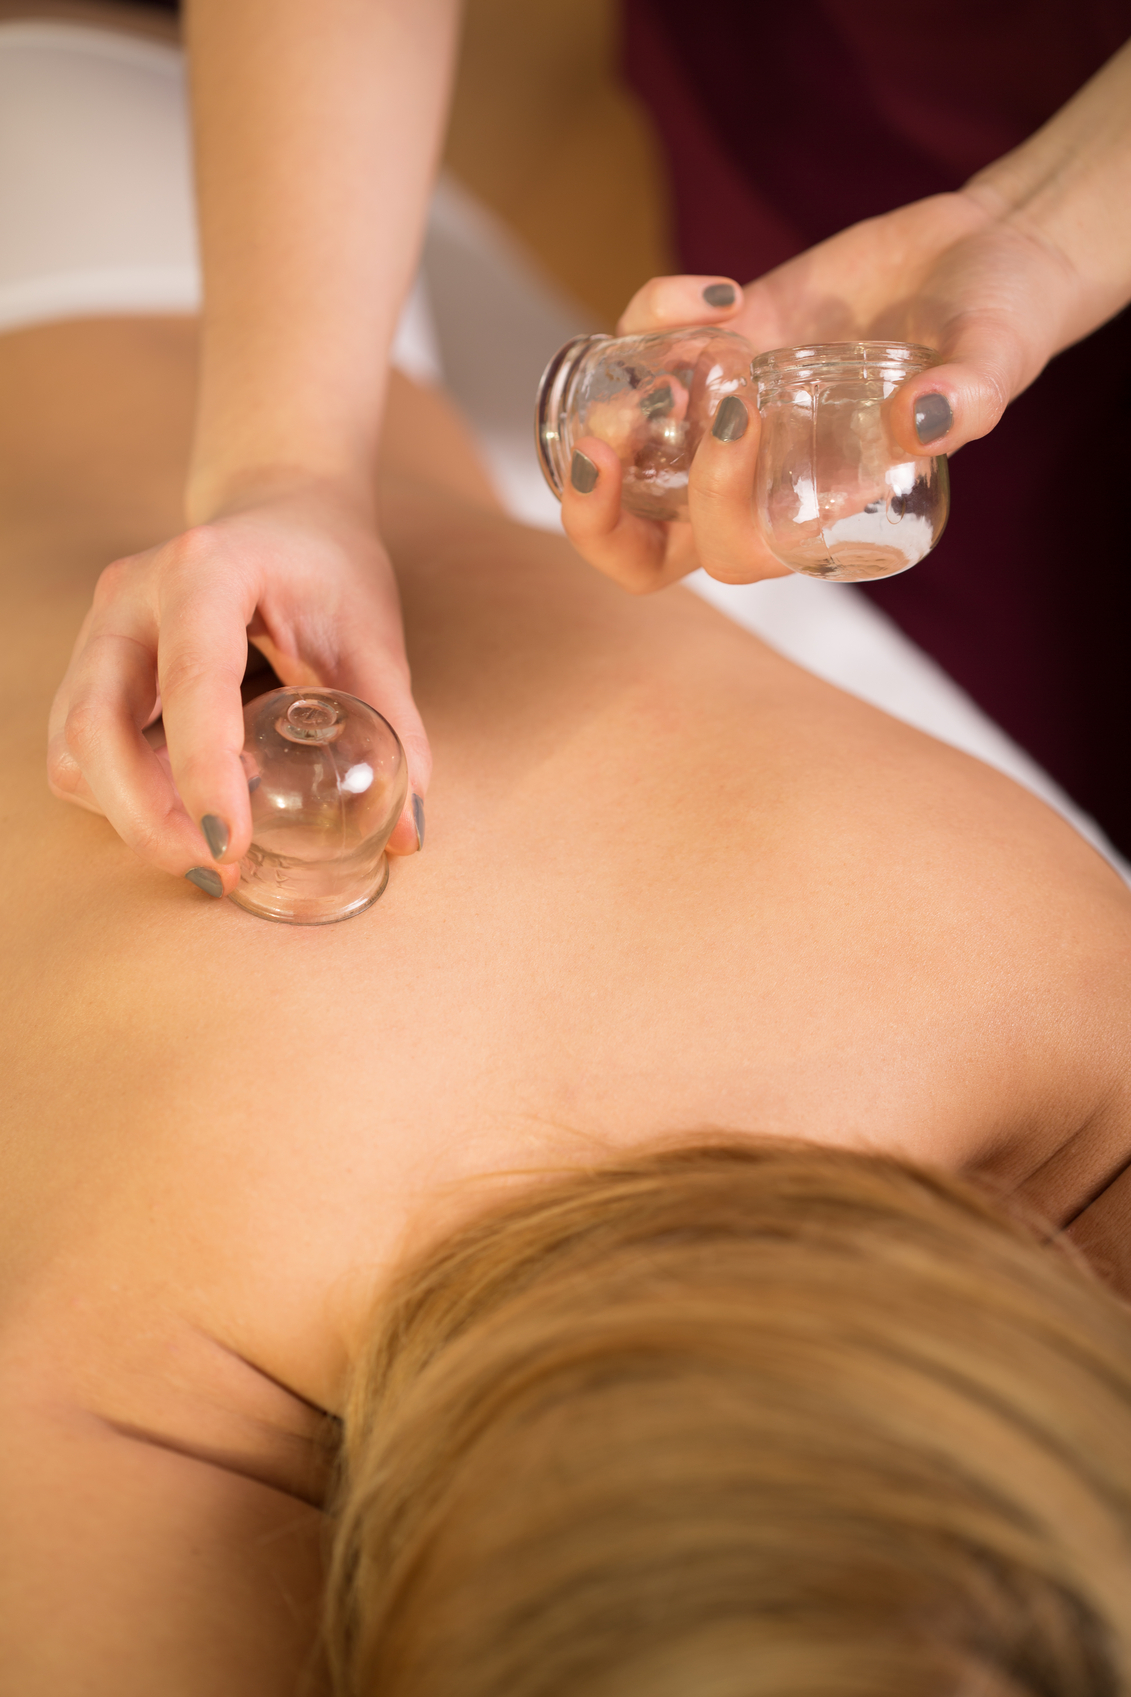 What exactly is cupping? - Harvard Health Blog - Harvard Health